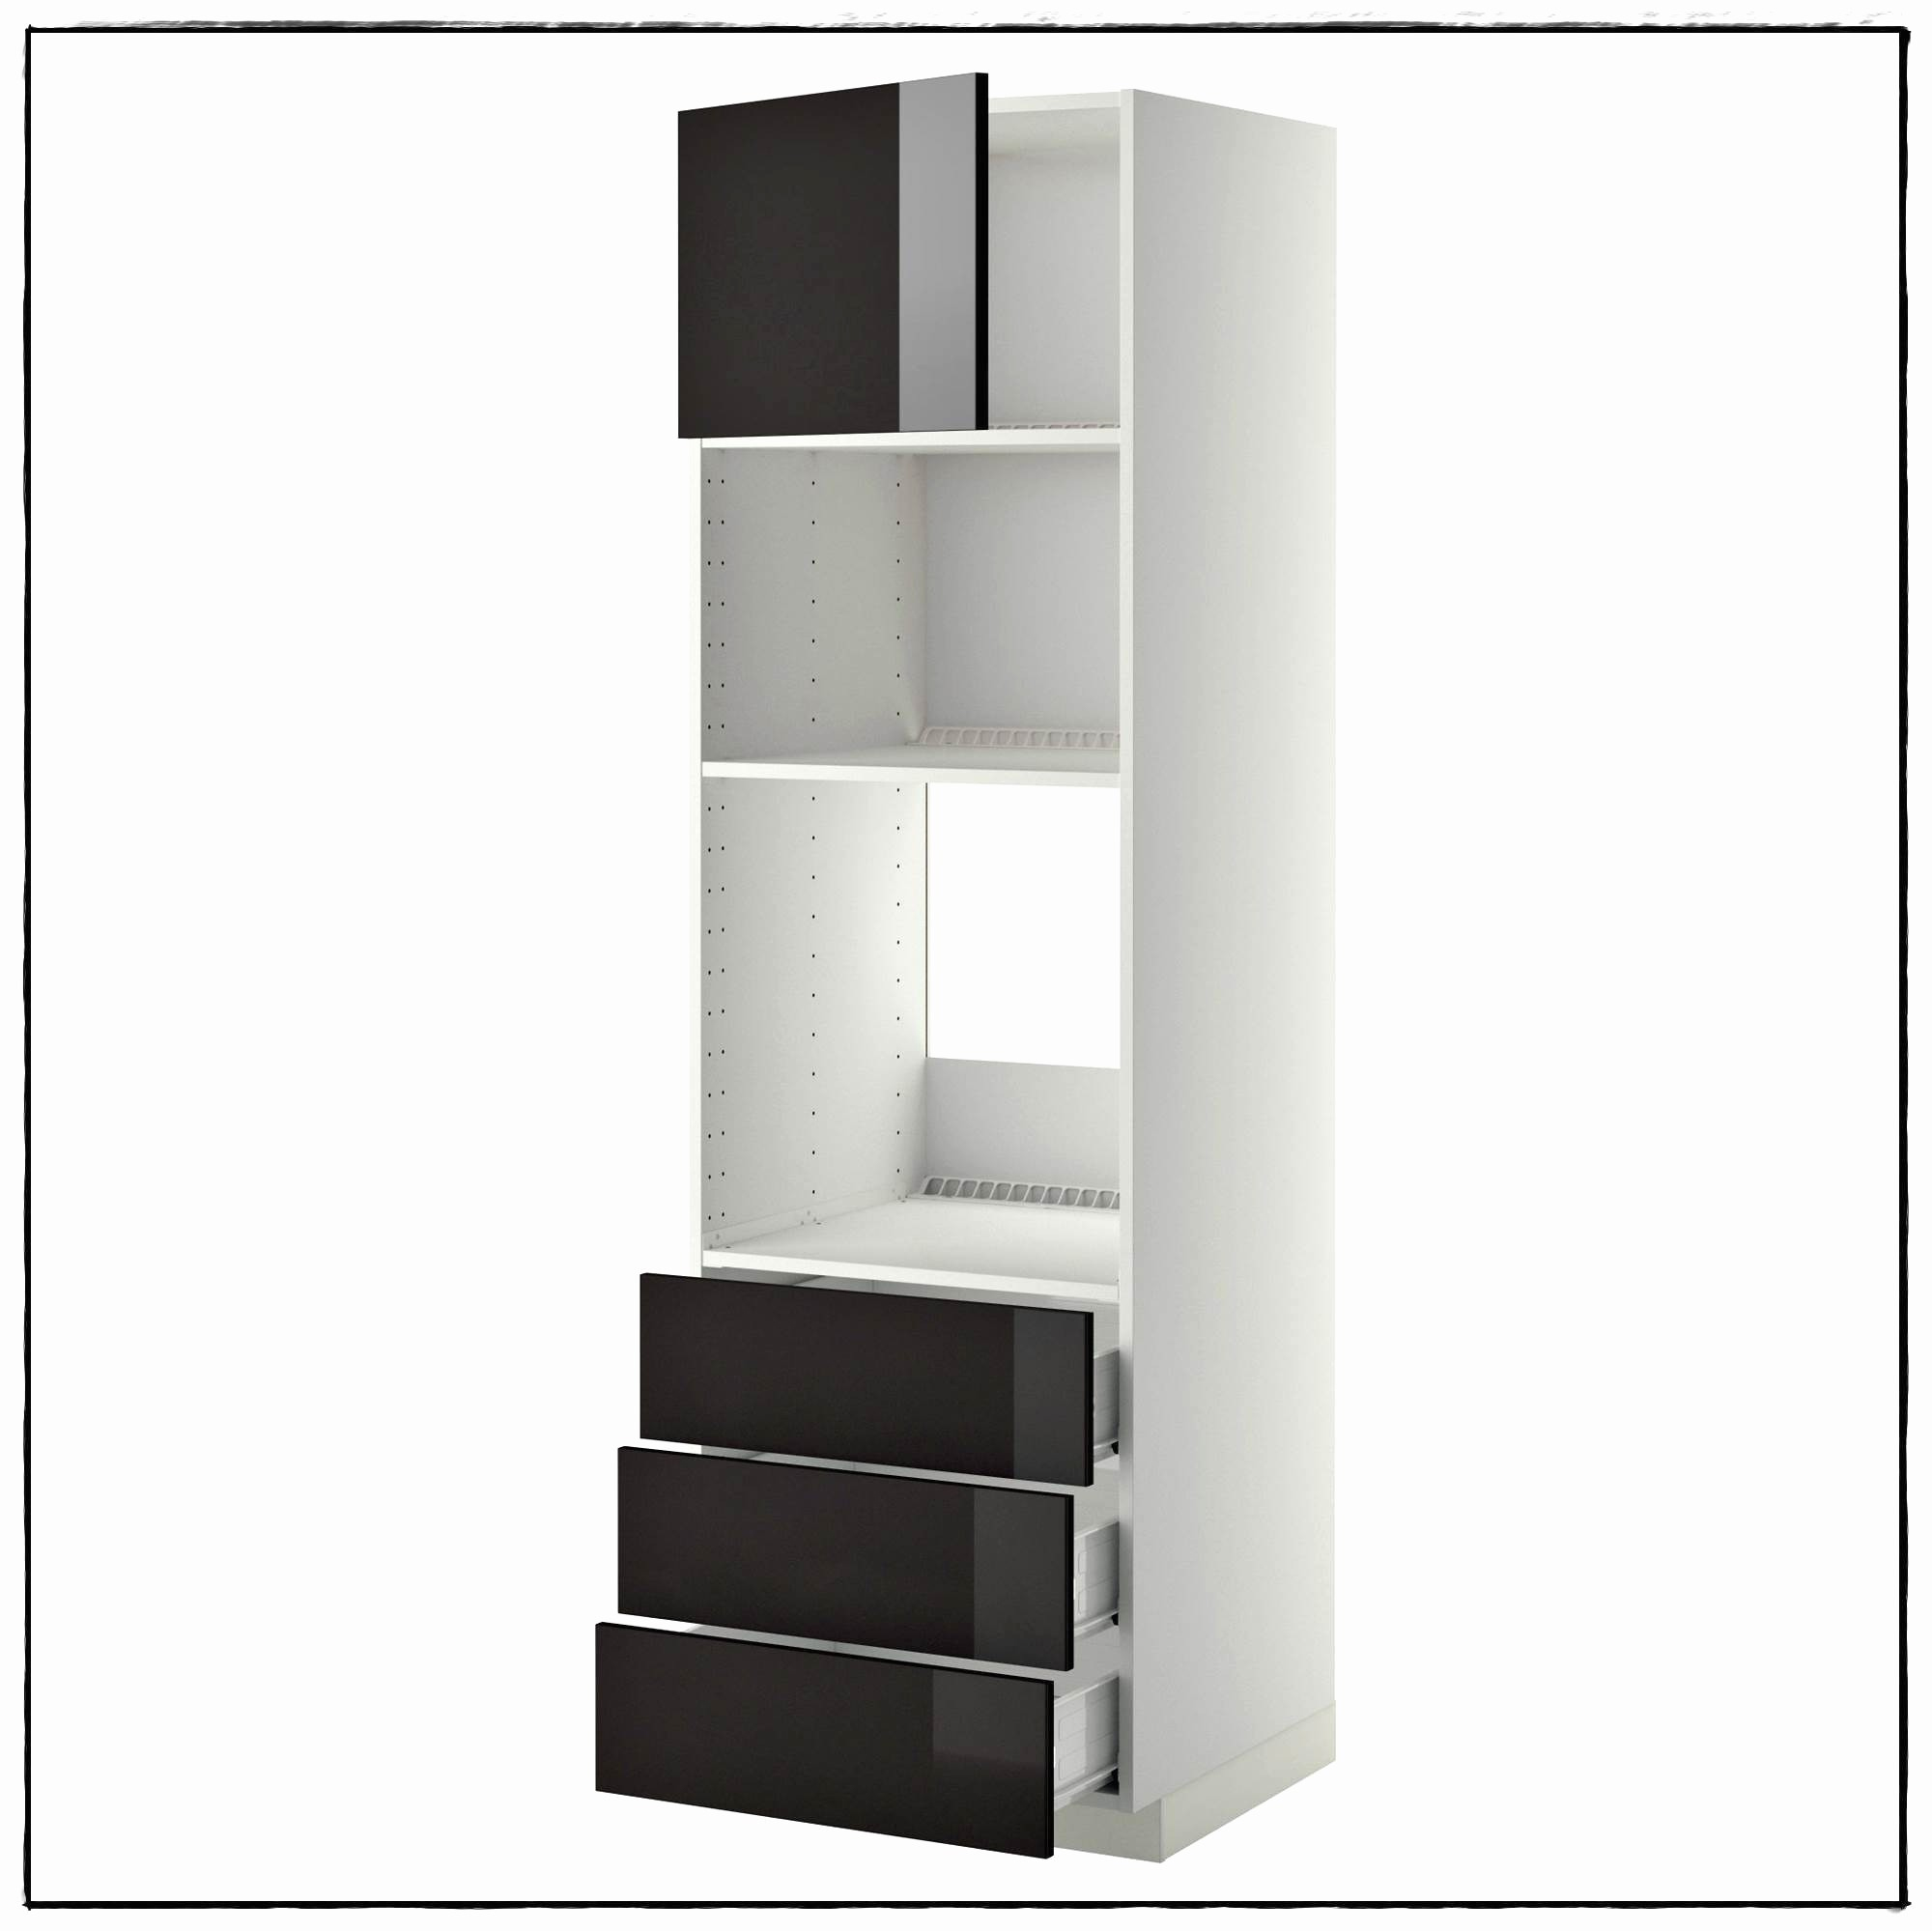 canape solde ikea frais photos canape 2 places convertible. Black Bedroom Furniture Sets. Home Design Ideas